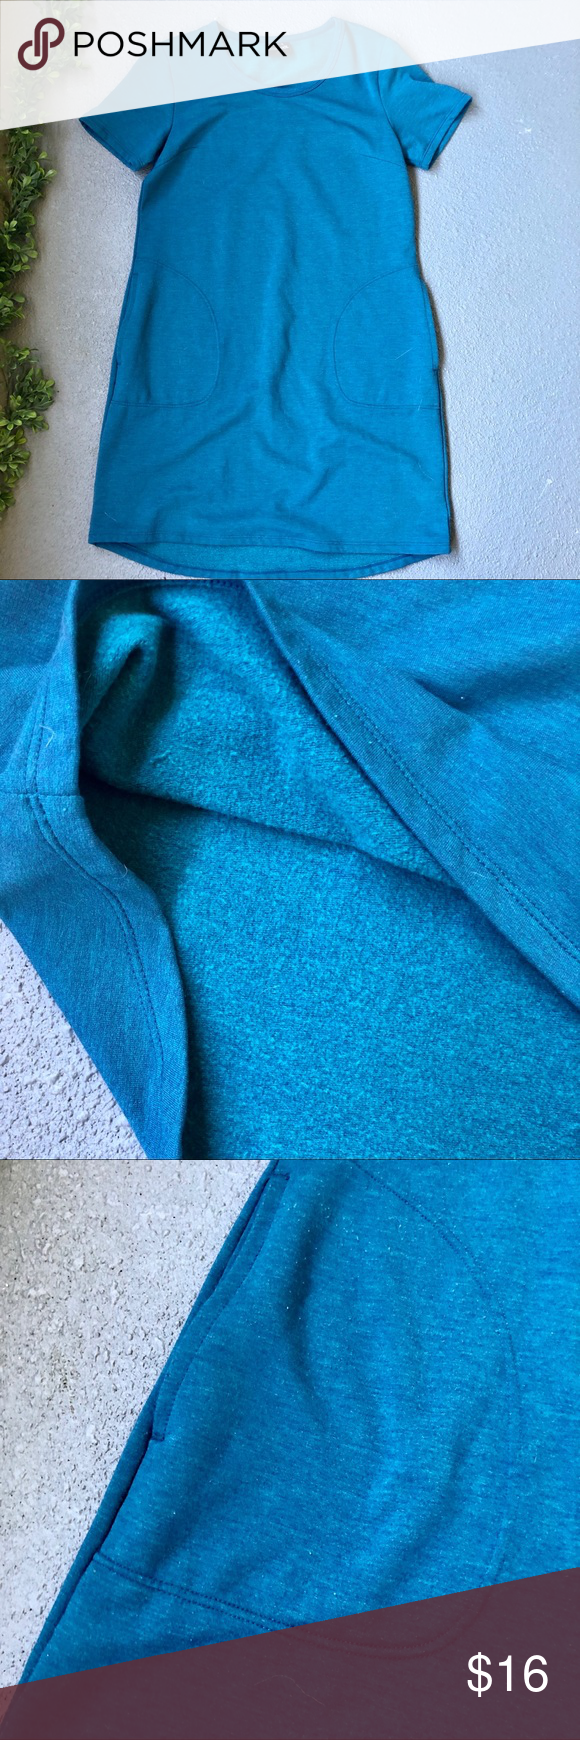 "32 Degrees  Teal Fleece Lined Dress Teal fleece lined dress, brand 32 degrees. Fleece lined, crew neck, short sleeved, pockets. Straight fit, pullover. Works as dress or tunic. Soft and cozy. EUC.  Bust / 18.5"" Length \ 33""  #0202 32 Degrees Dresses"